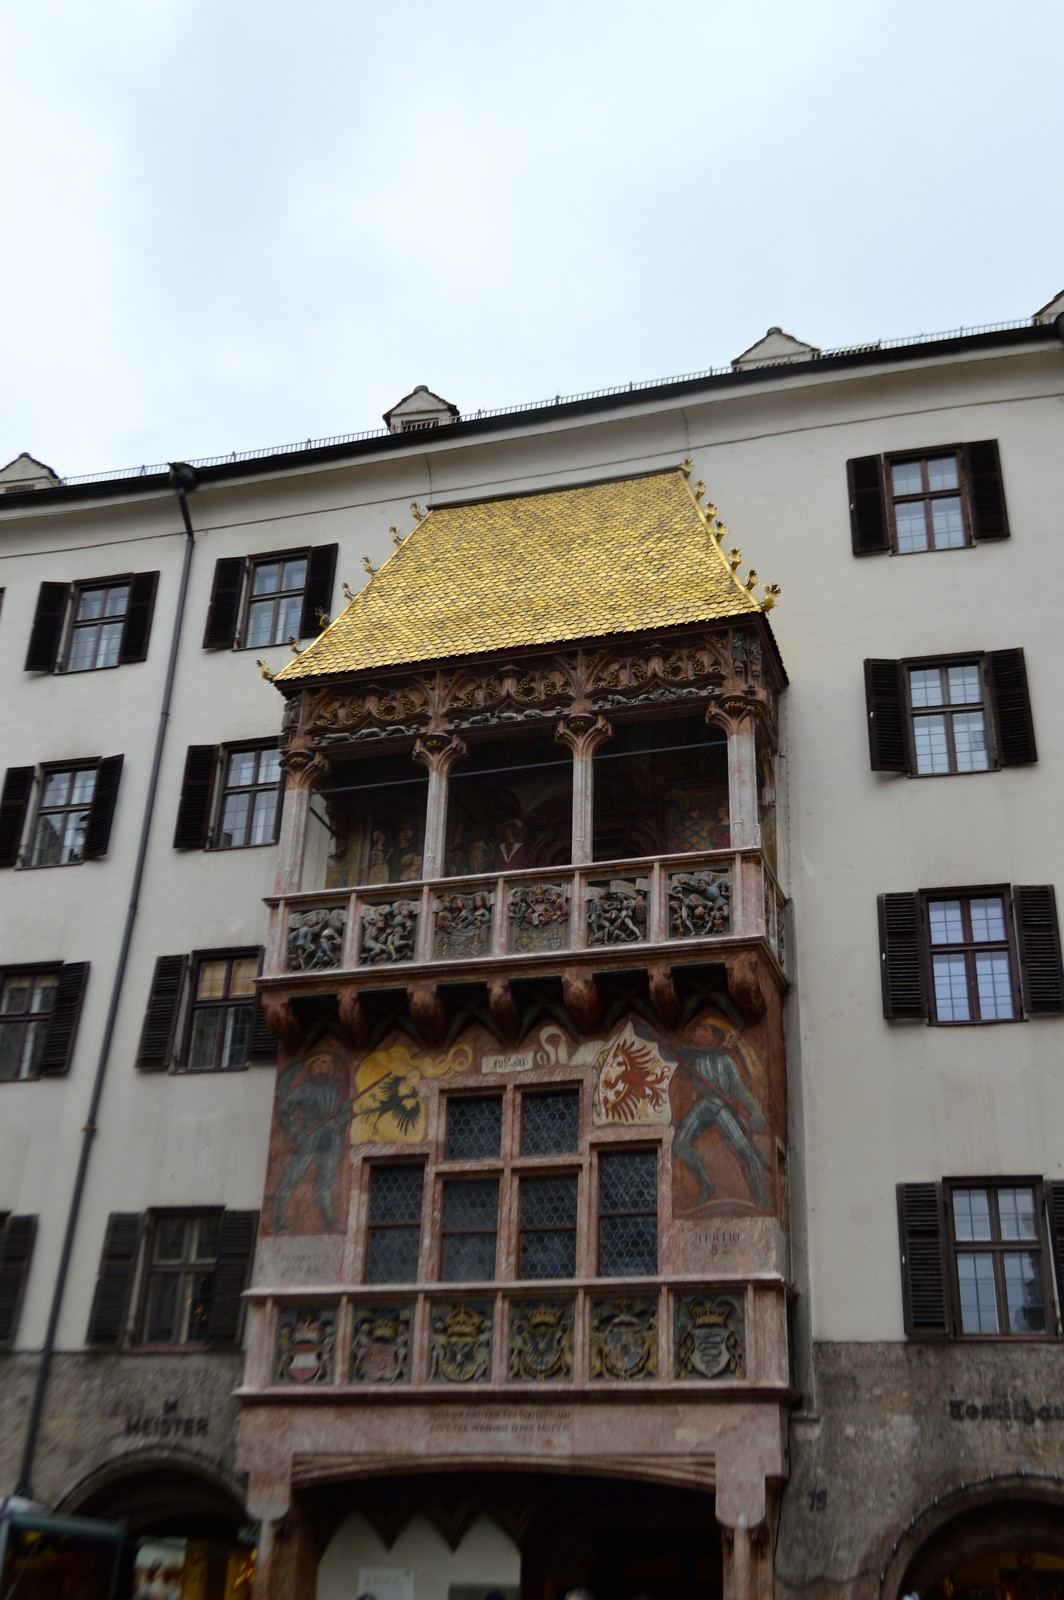 This is the picture of The Goldenes Dachl (Golden Roof) is a landmark structure located in the Old Town (Altstadt) section of Innsbruck